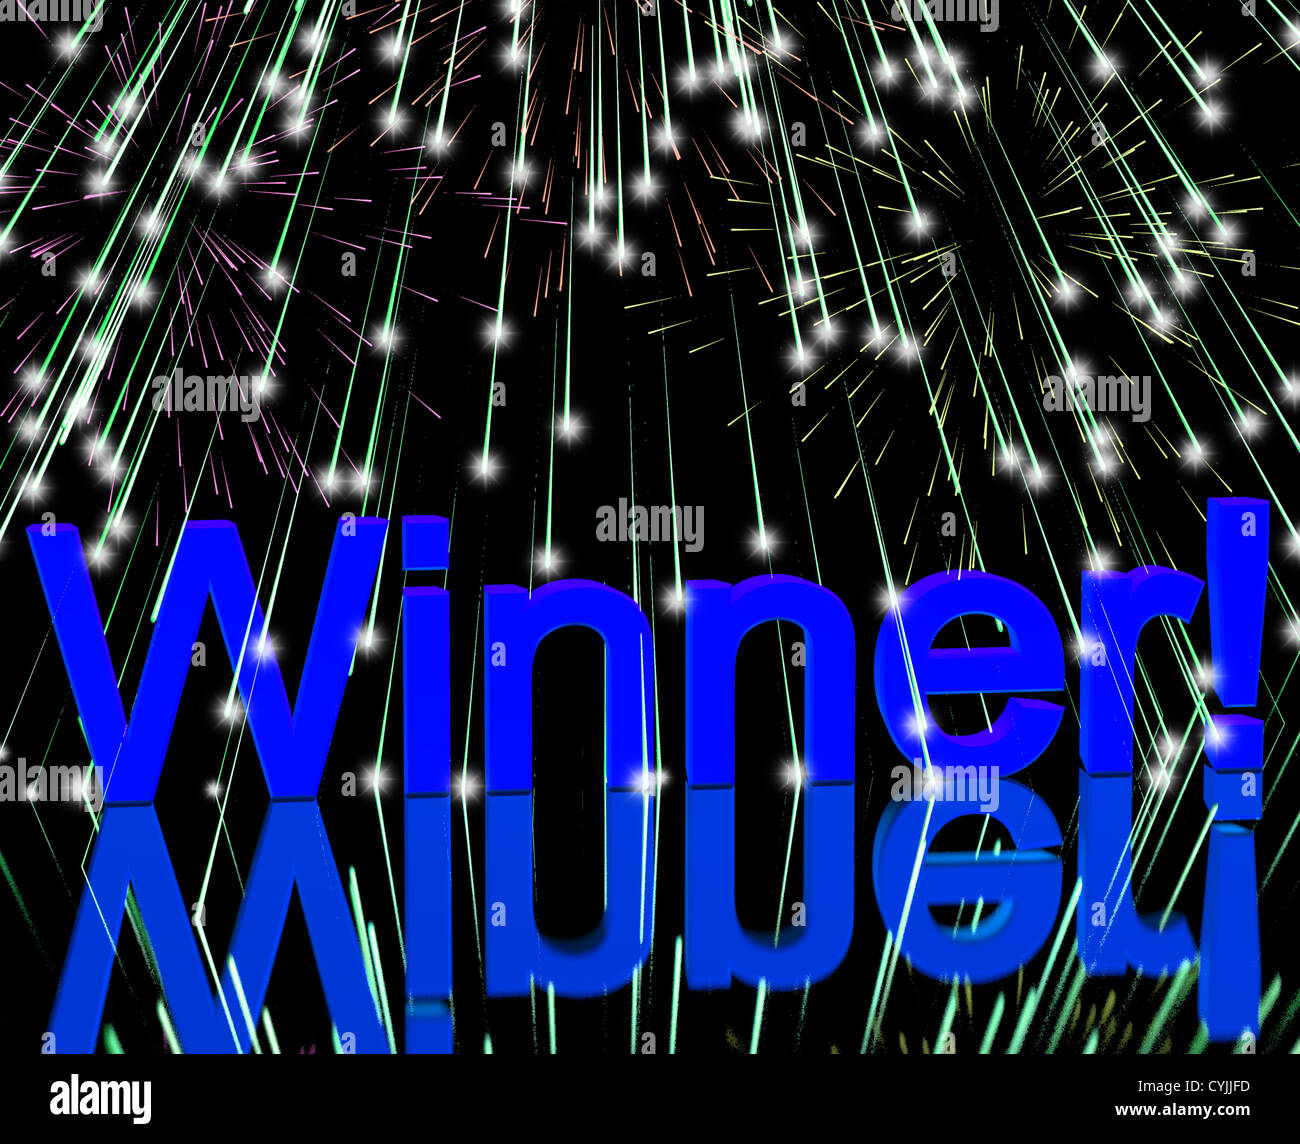 Winner Word With Fireworks Showing Successes And Victory - Stock Image